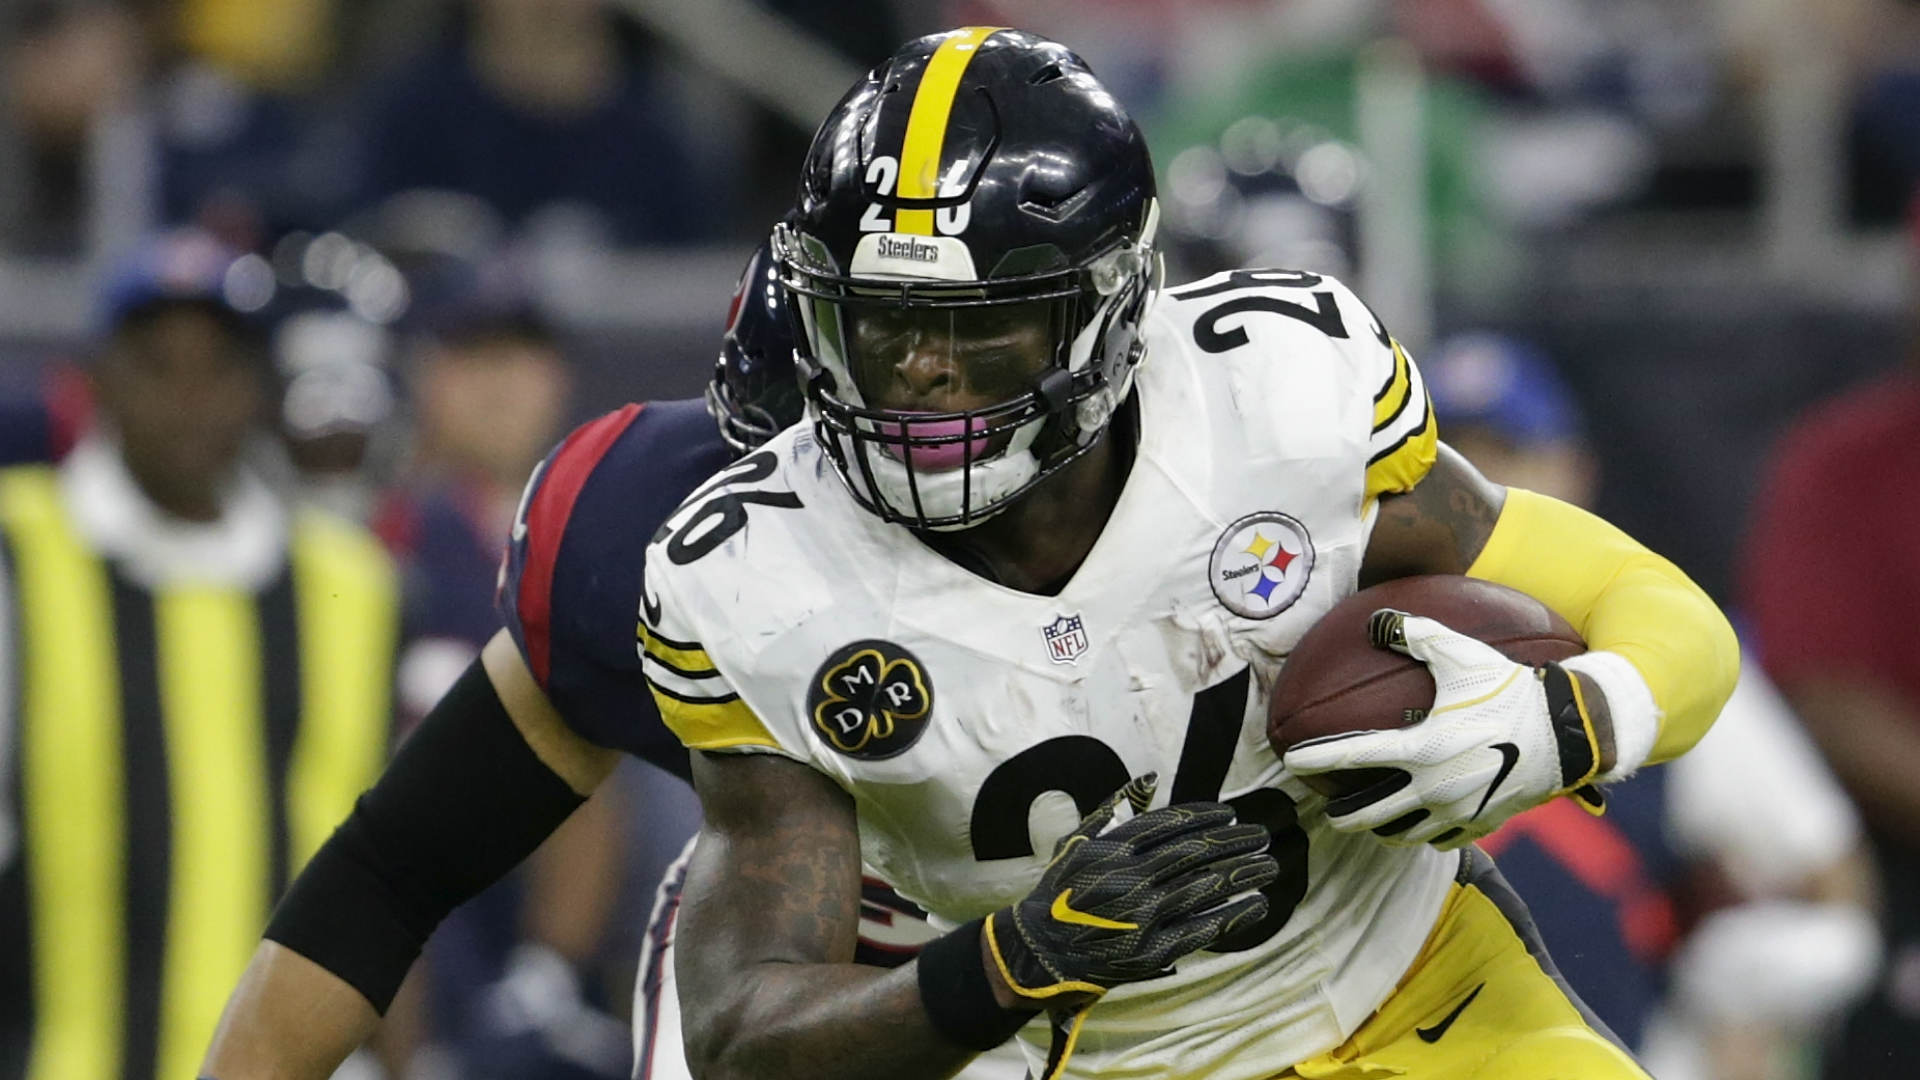 Le'Veon Bell says next year is 'irrelevant' after franchise tag comments